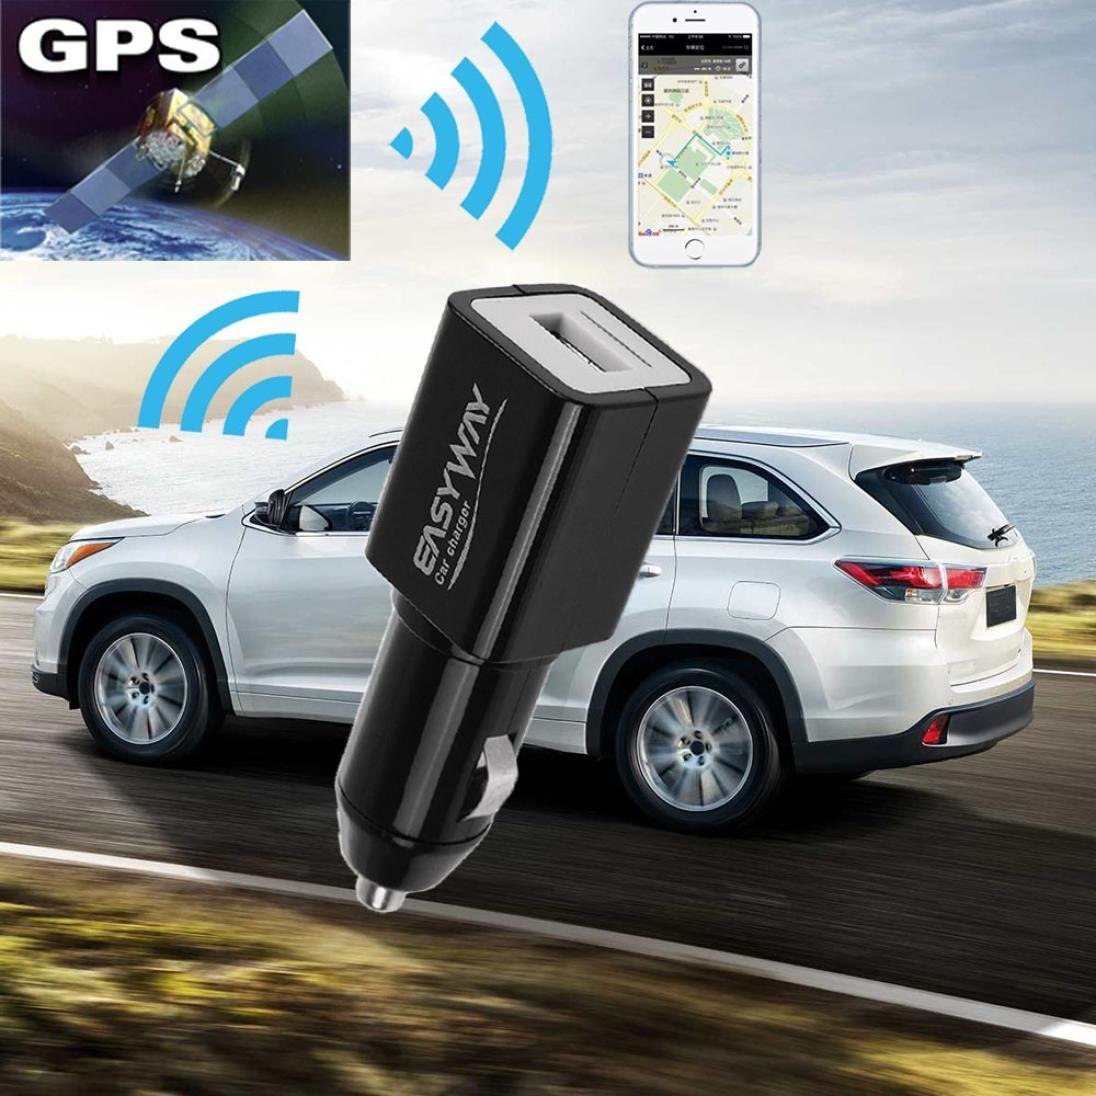 GBSELL Mini Portable Car Charger GPS Locator GSM GPRS Rea...